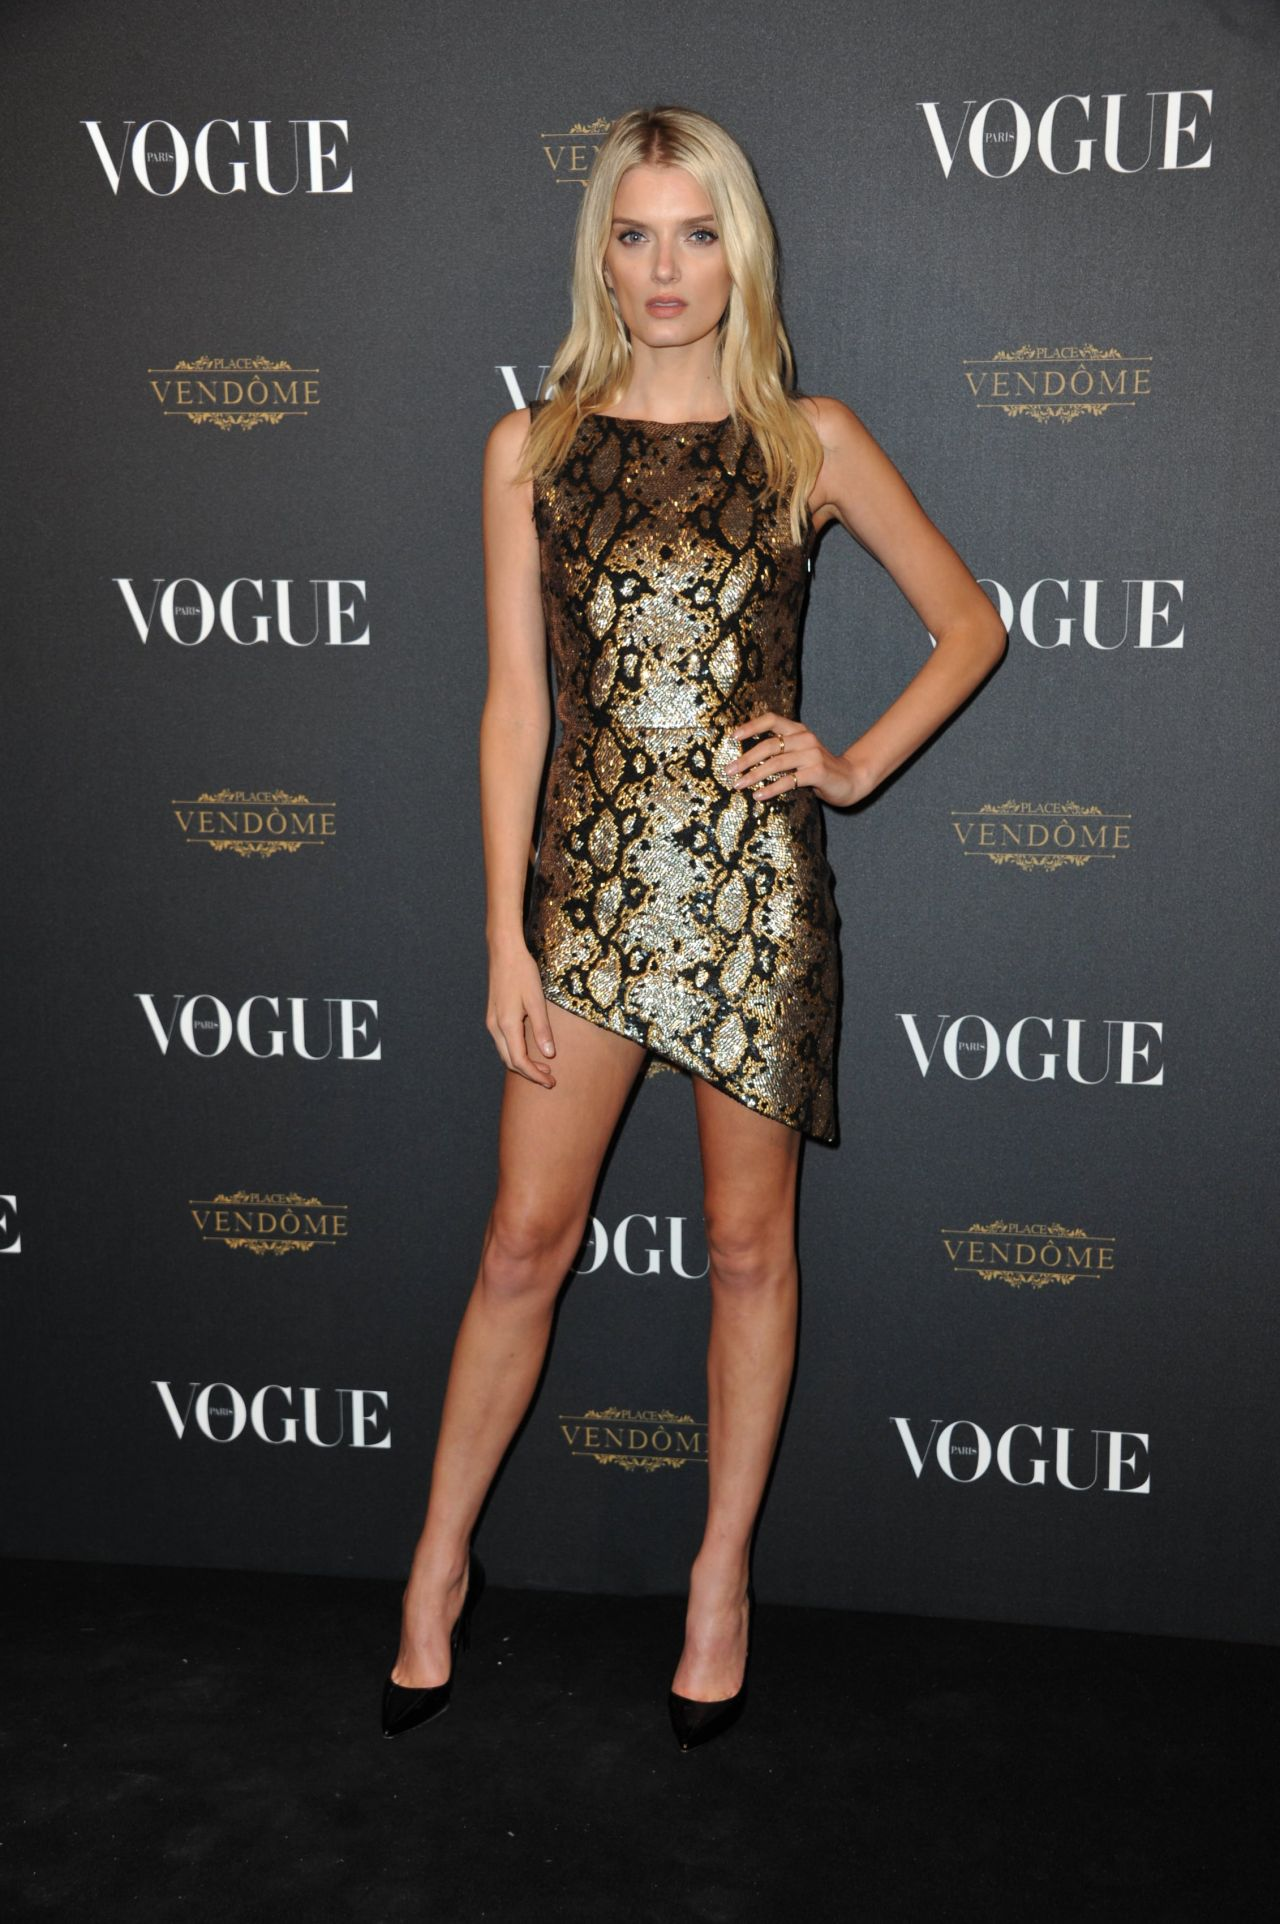 lily-donaldson-vogue-95th-anniversary-party-in-paris_1